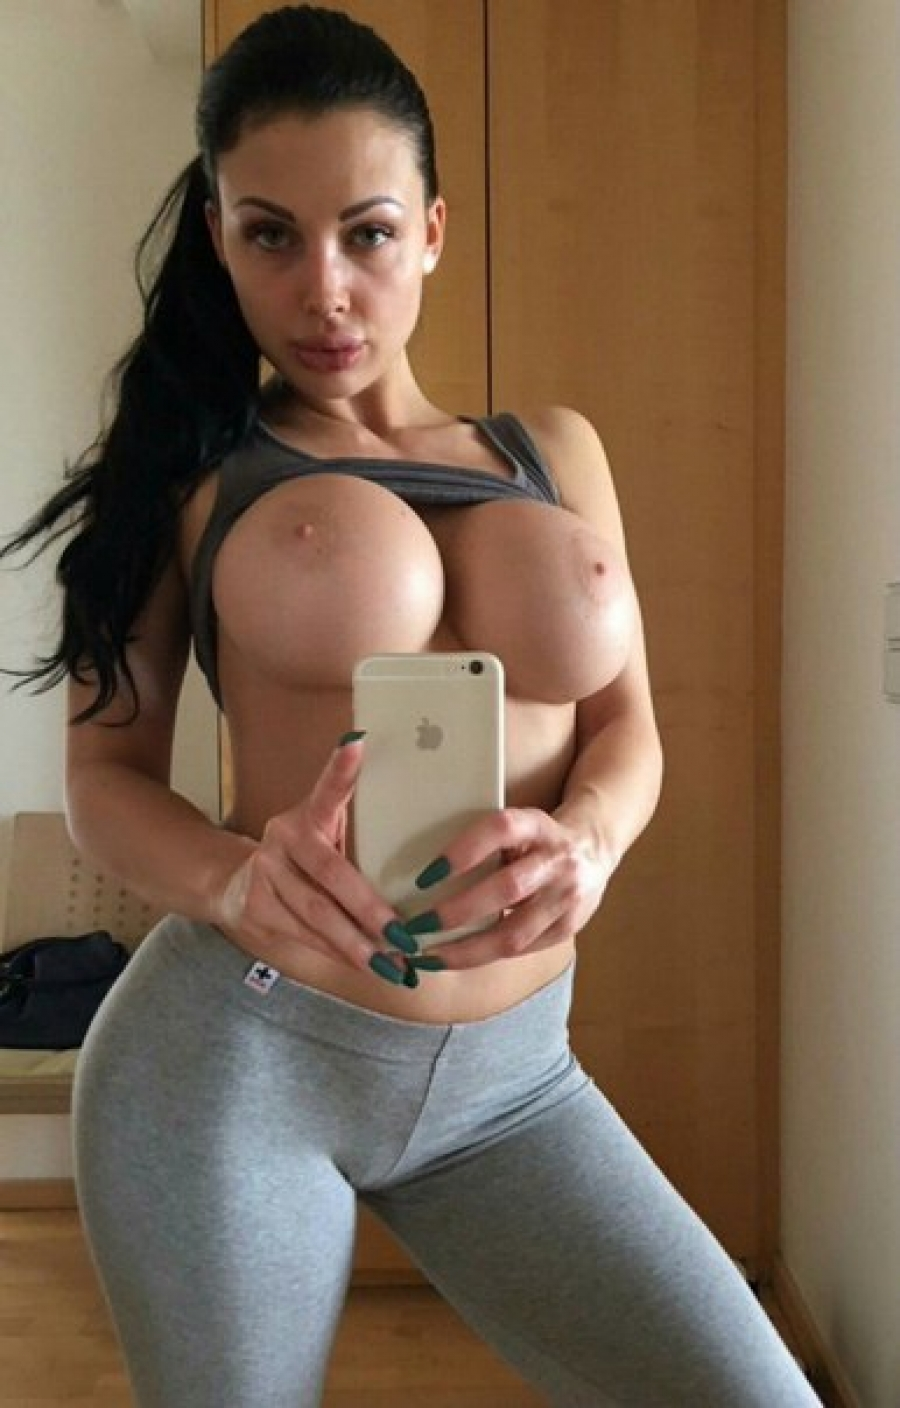 Very big boobs after workout